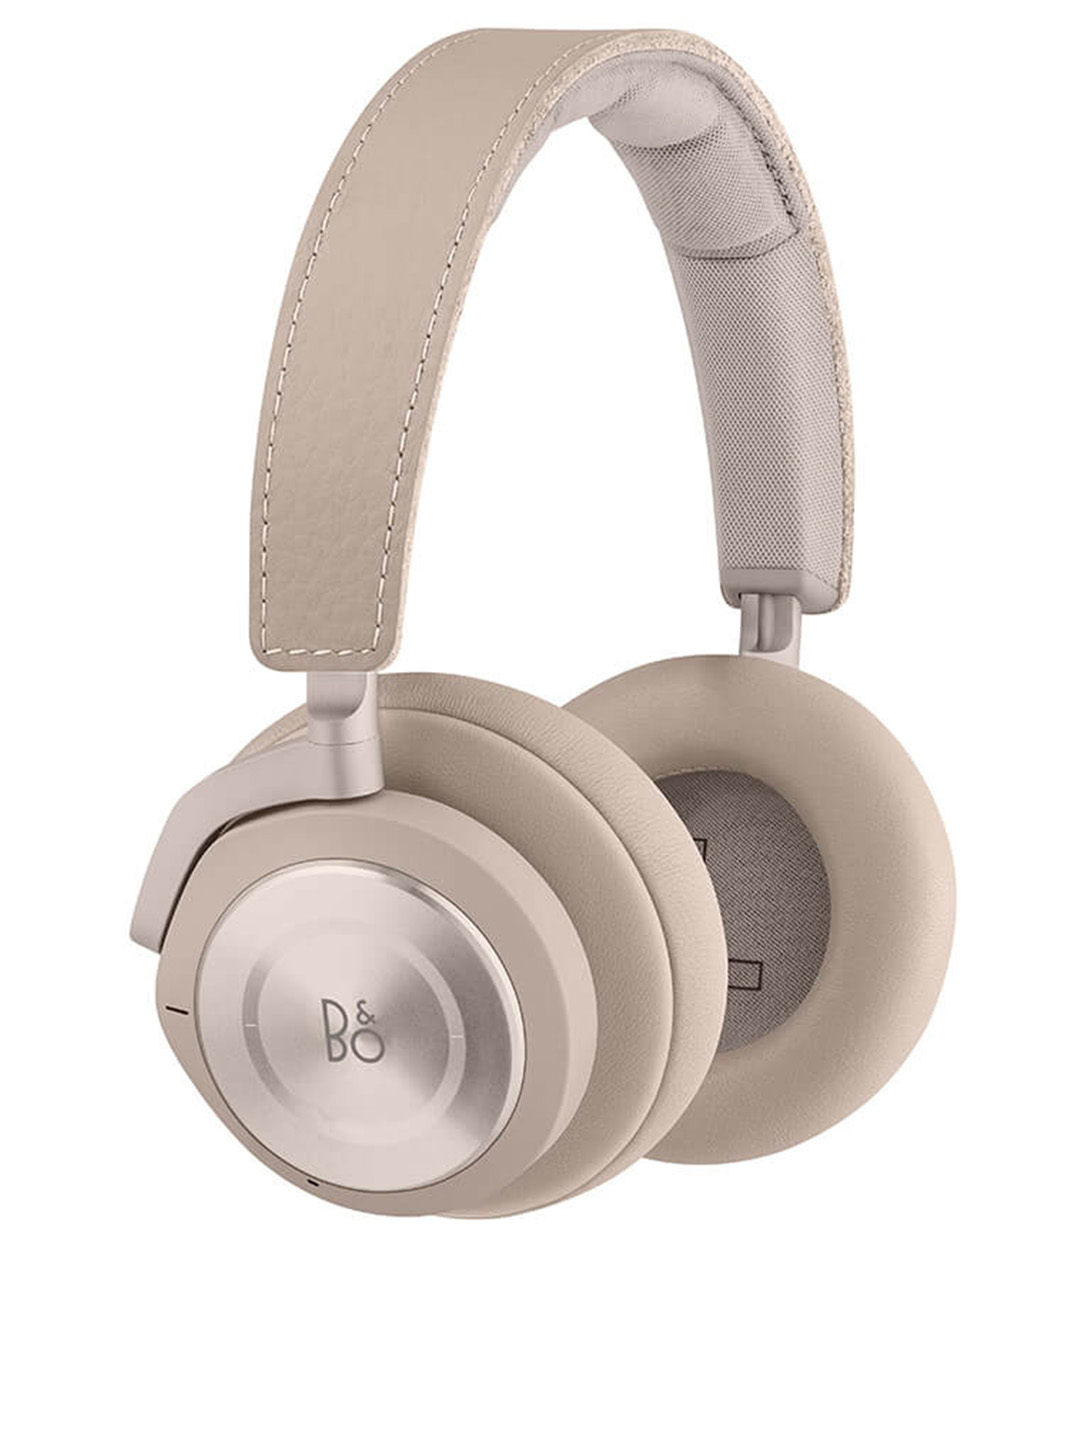 BANG & OLUFSEN Beoplay H9i Wireless Headphones Gifts Grey